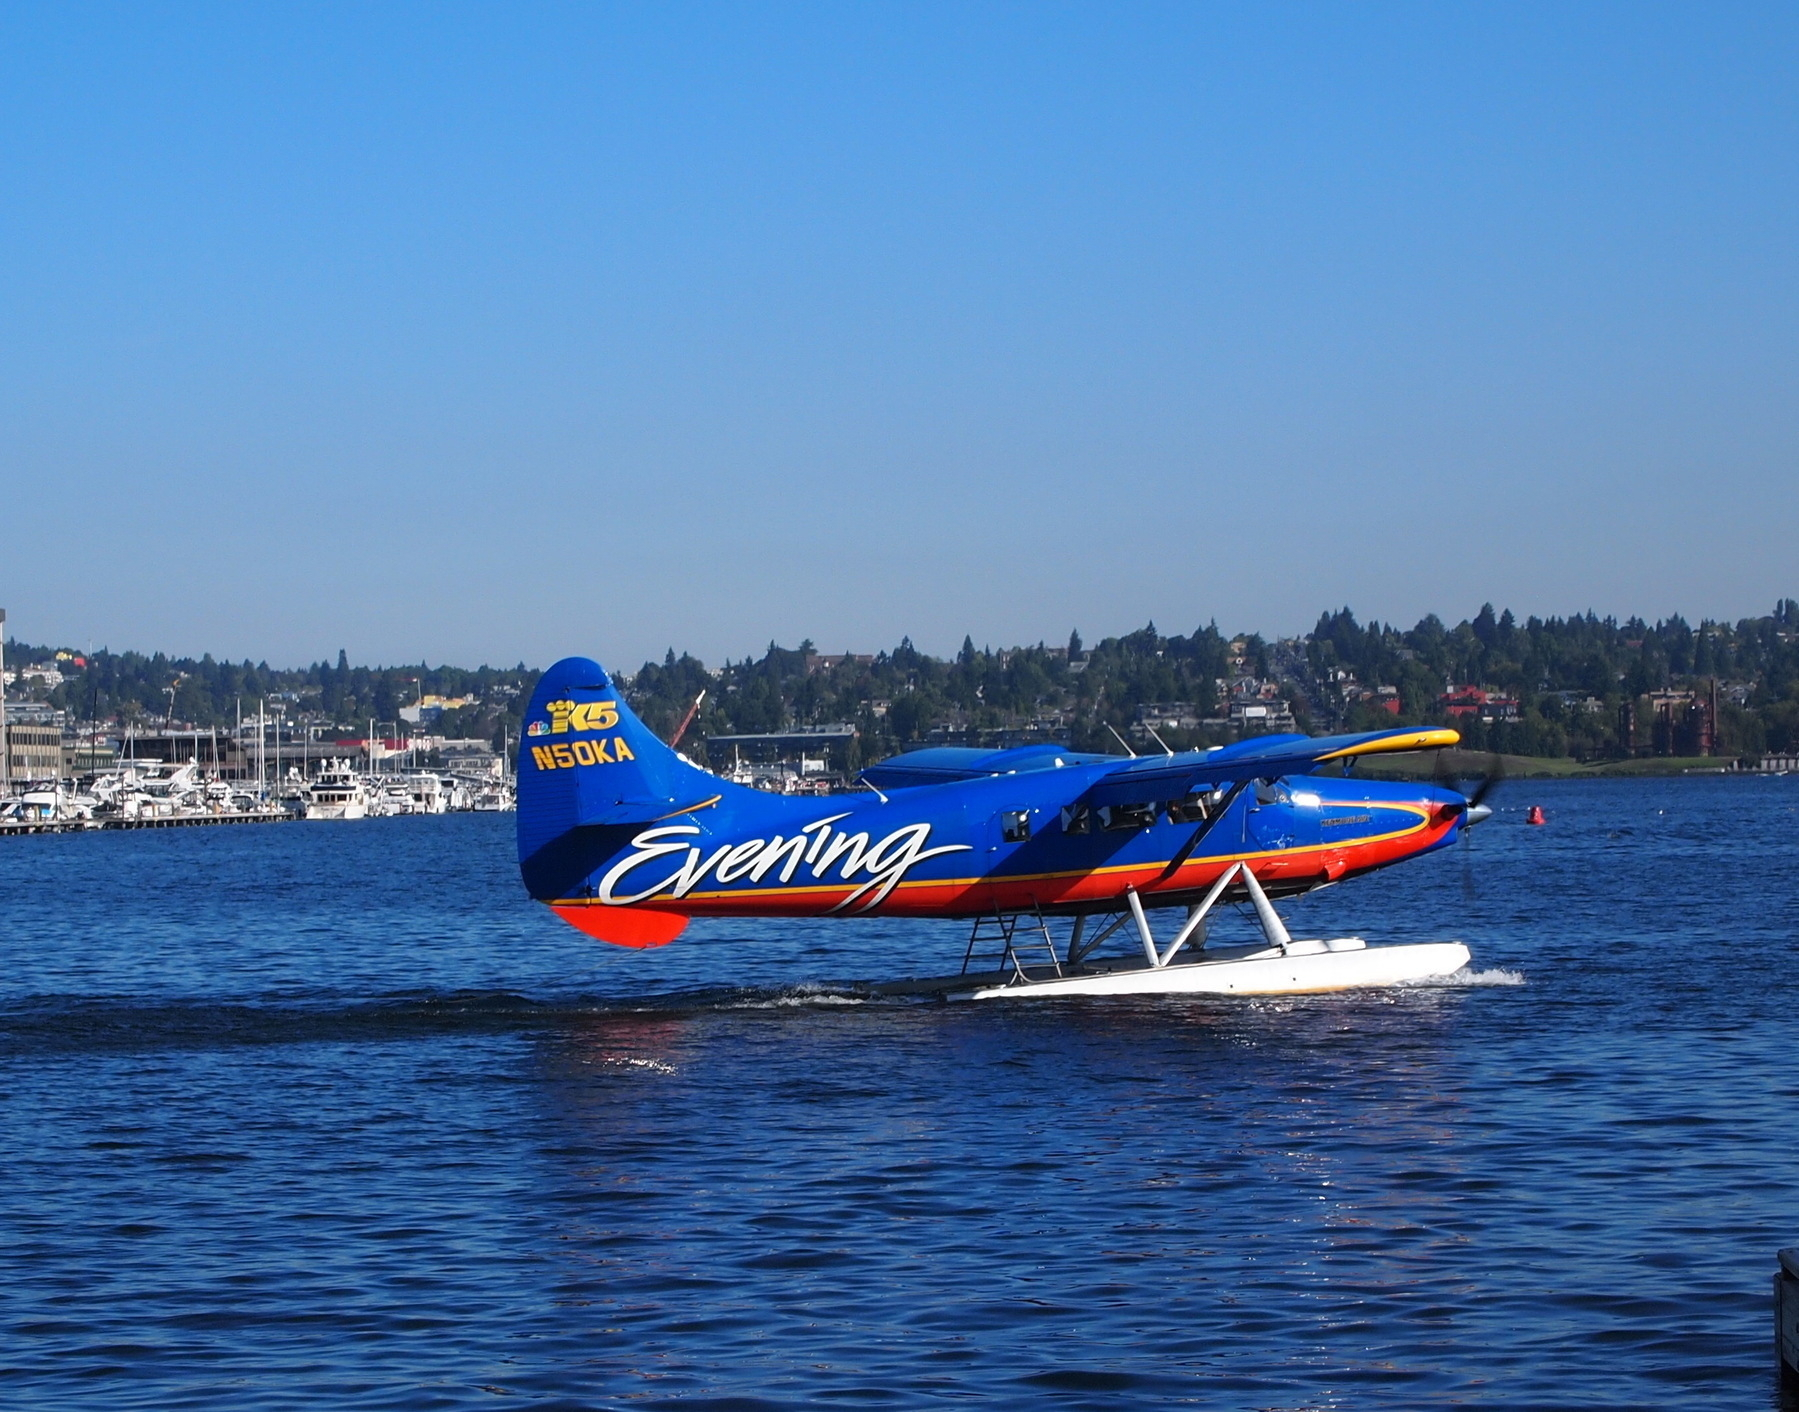 A 10-12 passenger seaplane taxis along the blue water of South Lake Union in Seattle. The plane is painted blue with logos from King 5 news and Evening Magazine, a local television show.